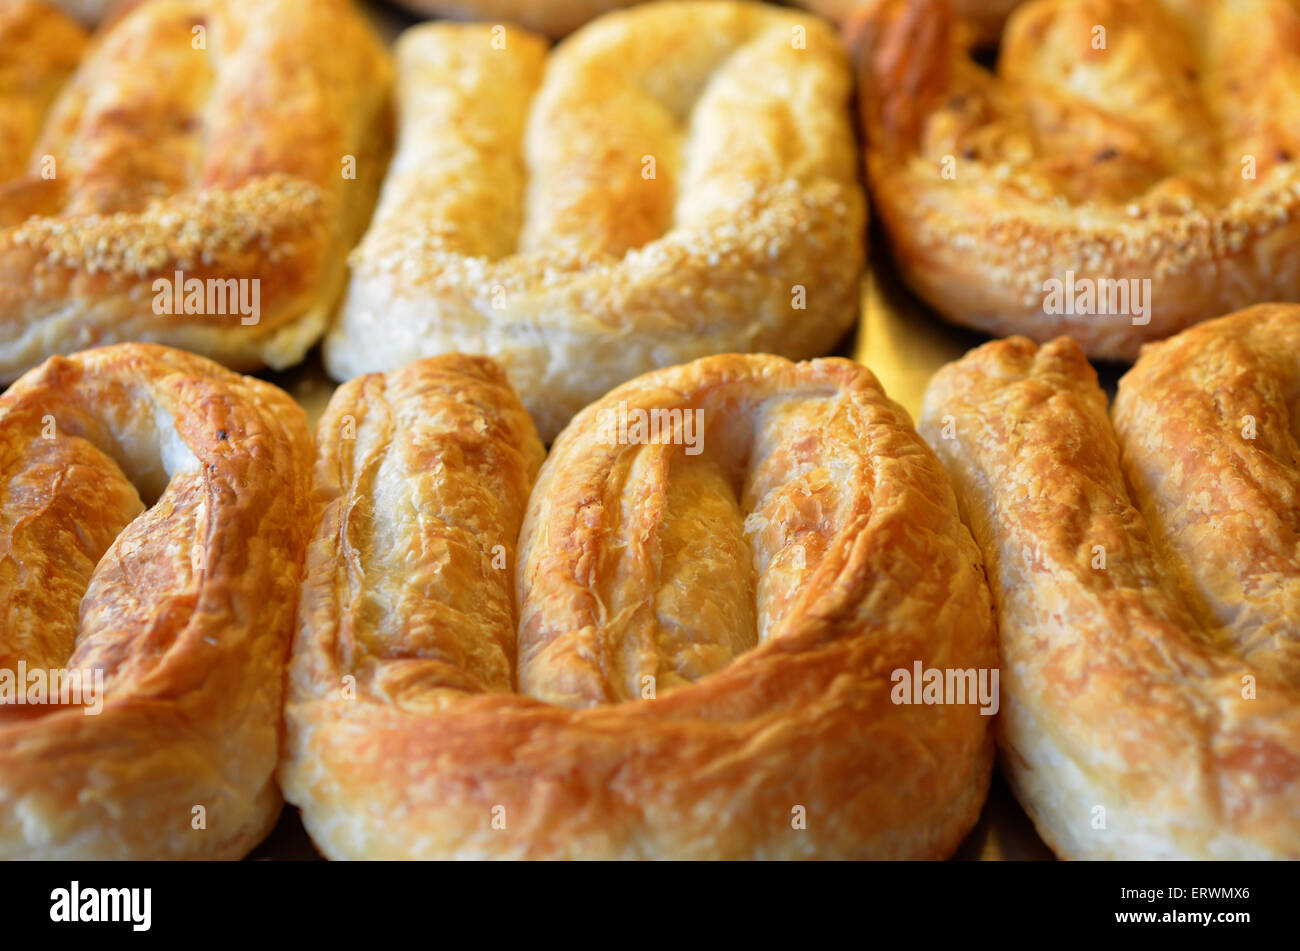 Balkans pastry borek on display in a bakery, food background and texture Stock Photo